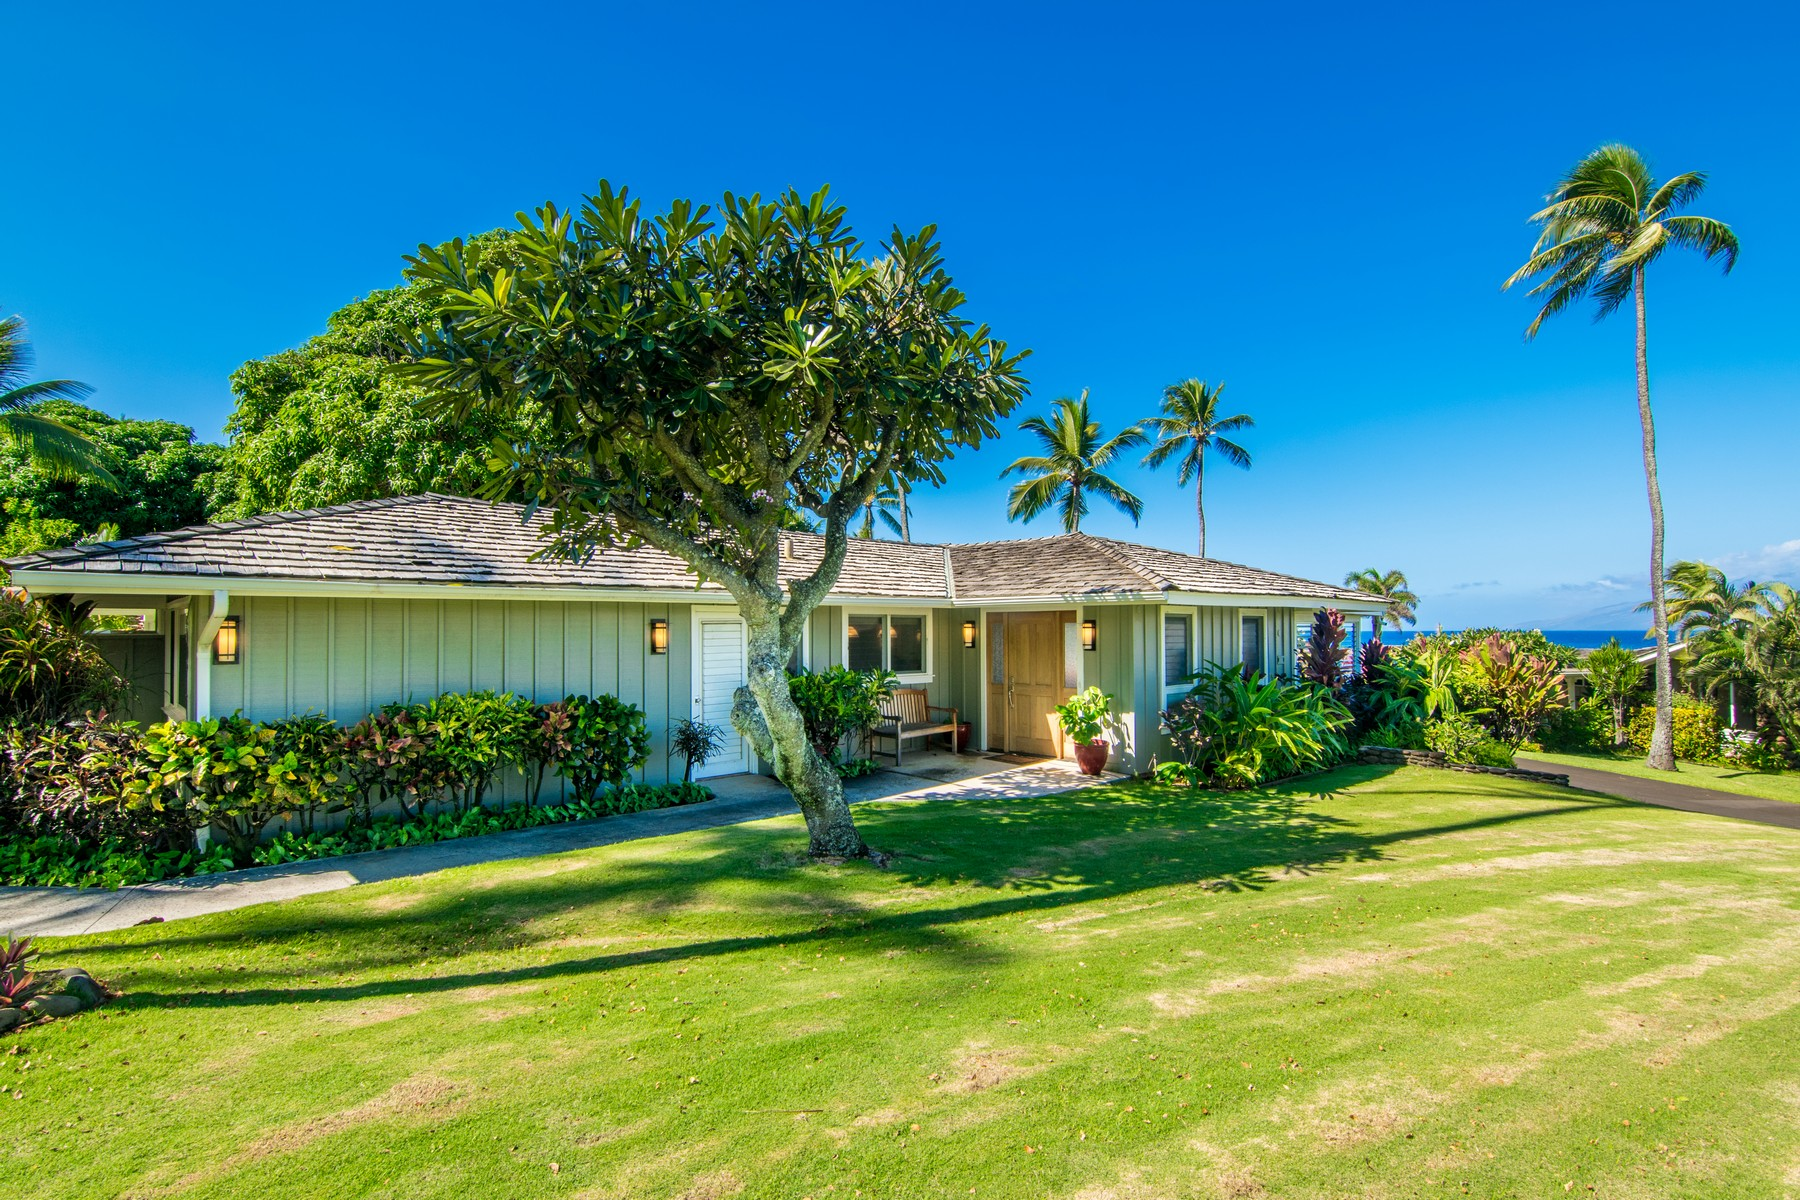 Property For Sale at Emmy Award Winner's Maui Vacation Home